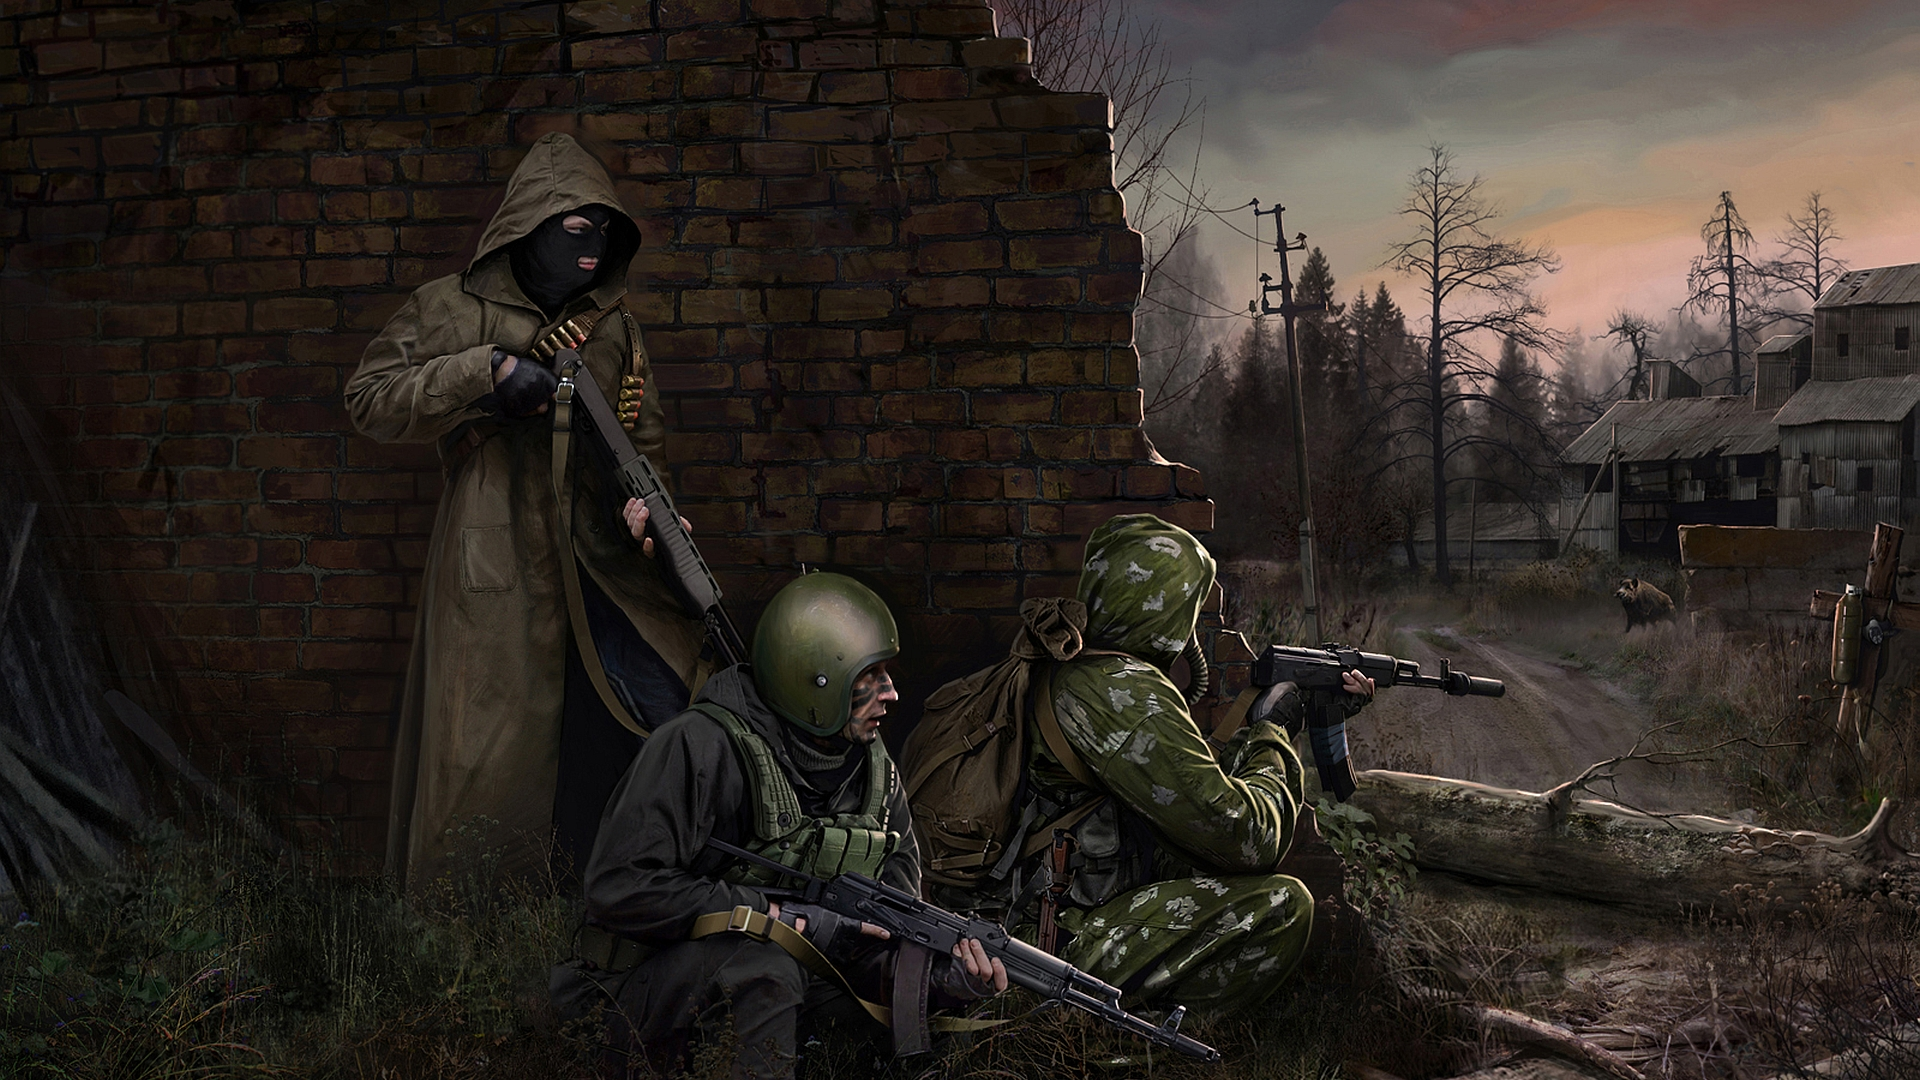 Escape From Tarkov Wallpaper 4k: Tarkov/Stalker/Post Apocalyptic Art